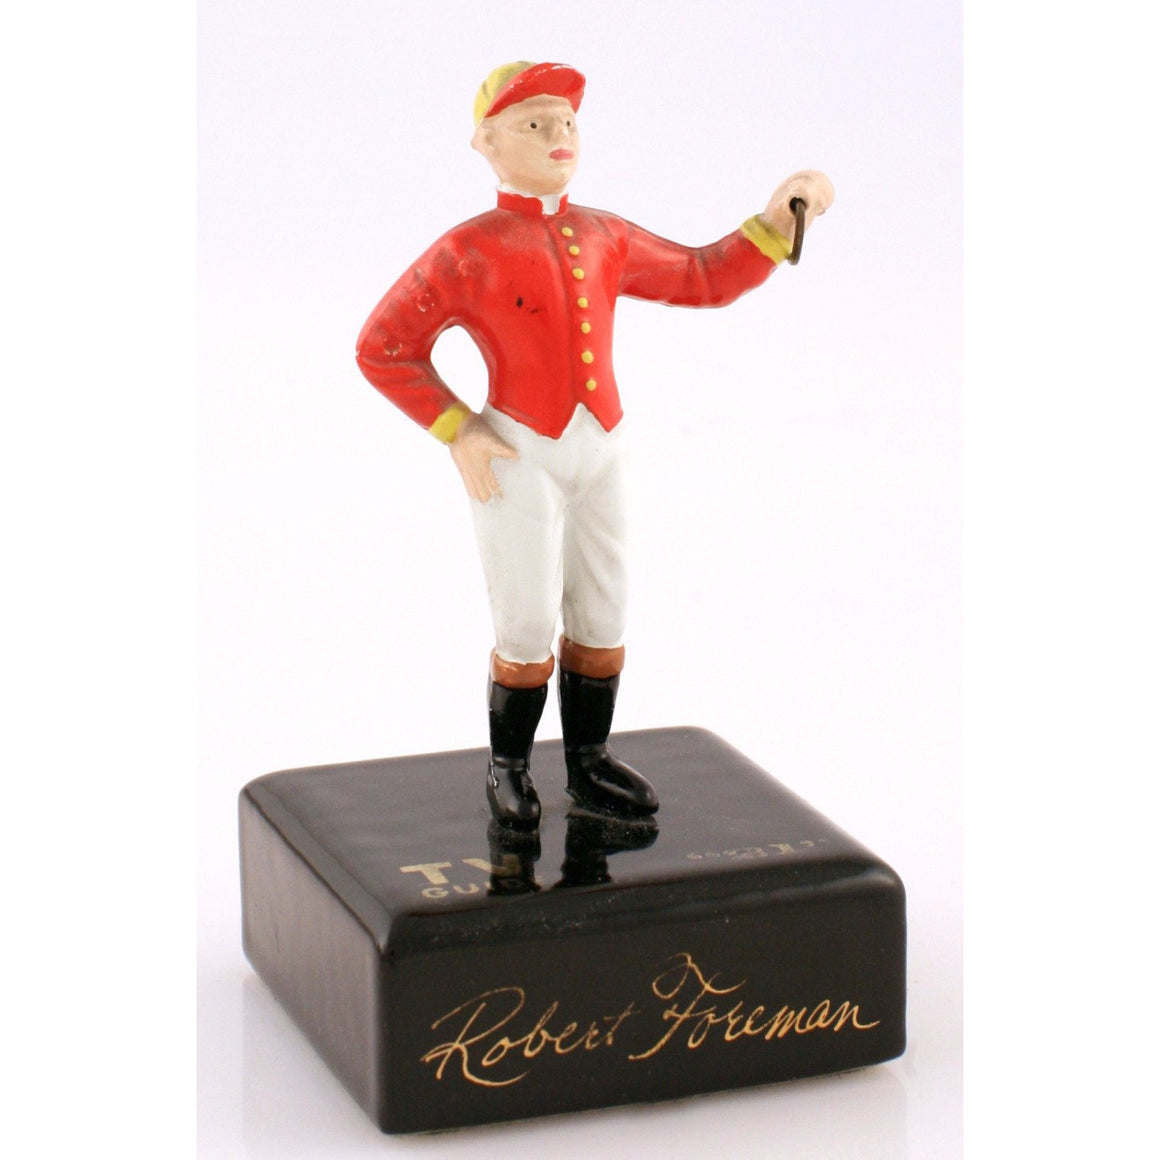 21 Club Jockey Paperweight